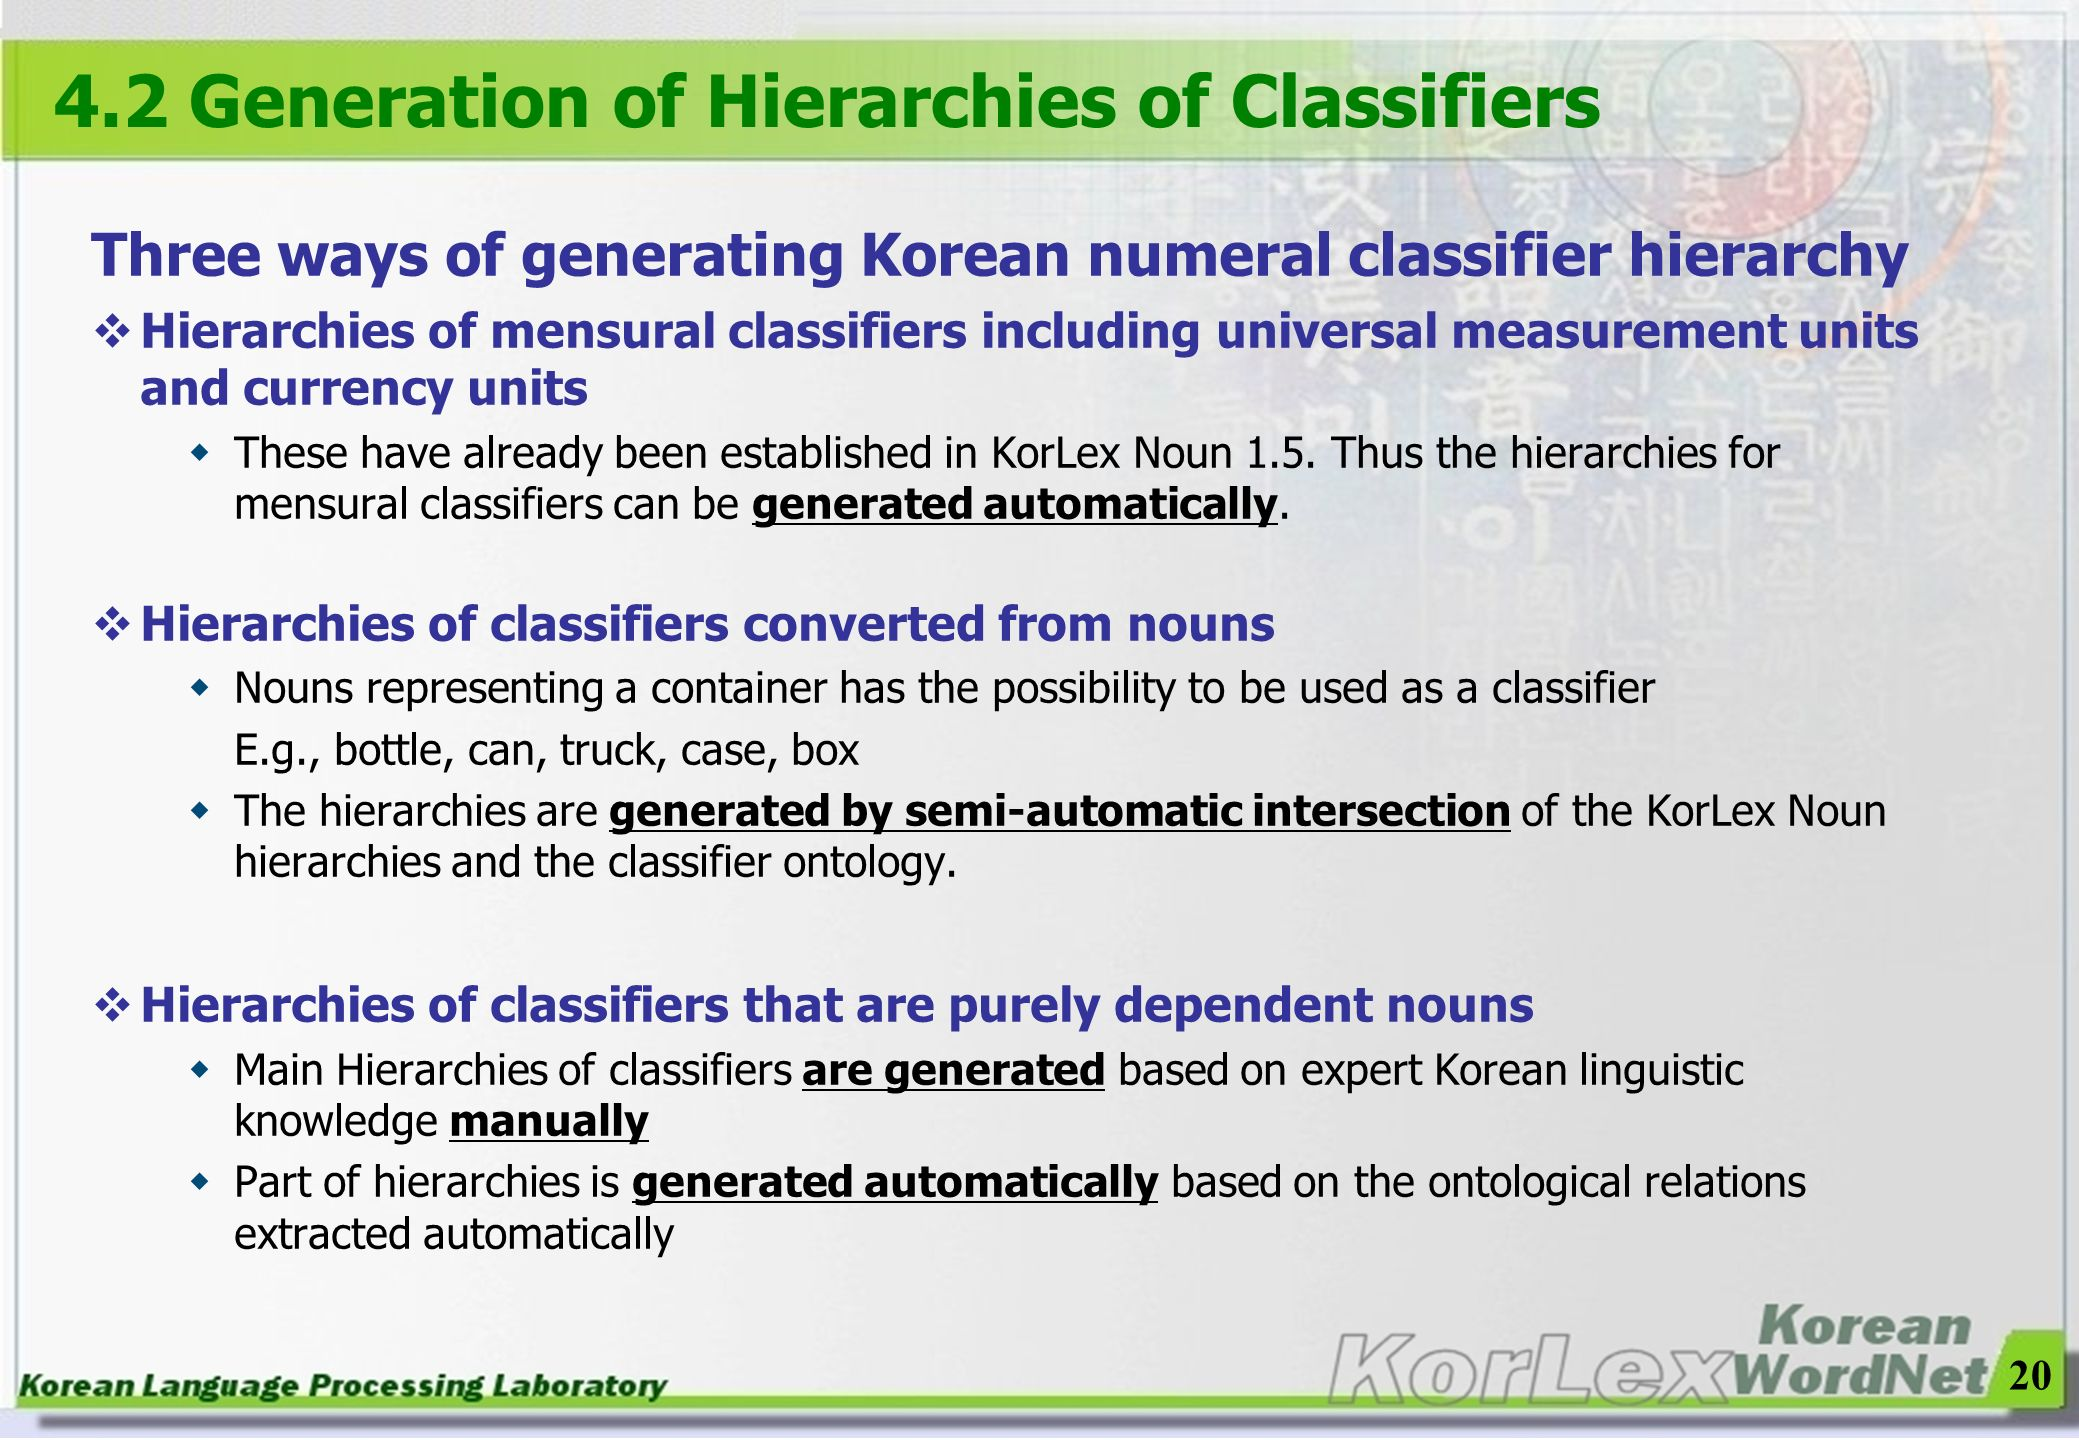 4.2 Generation of Hierarchies of Classifiers